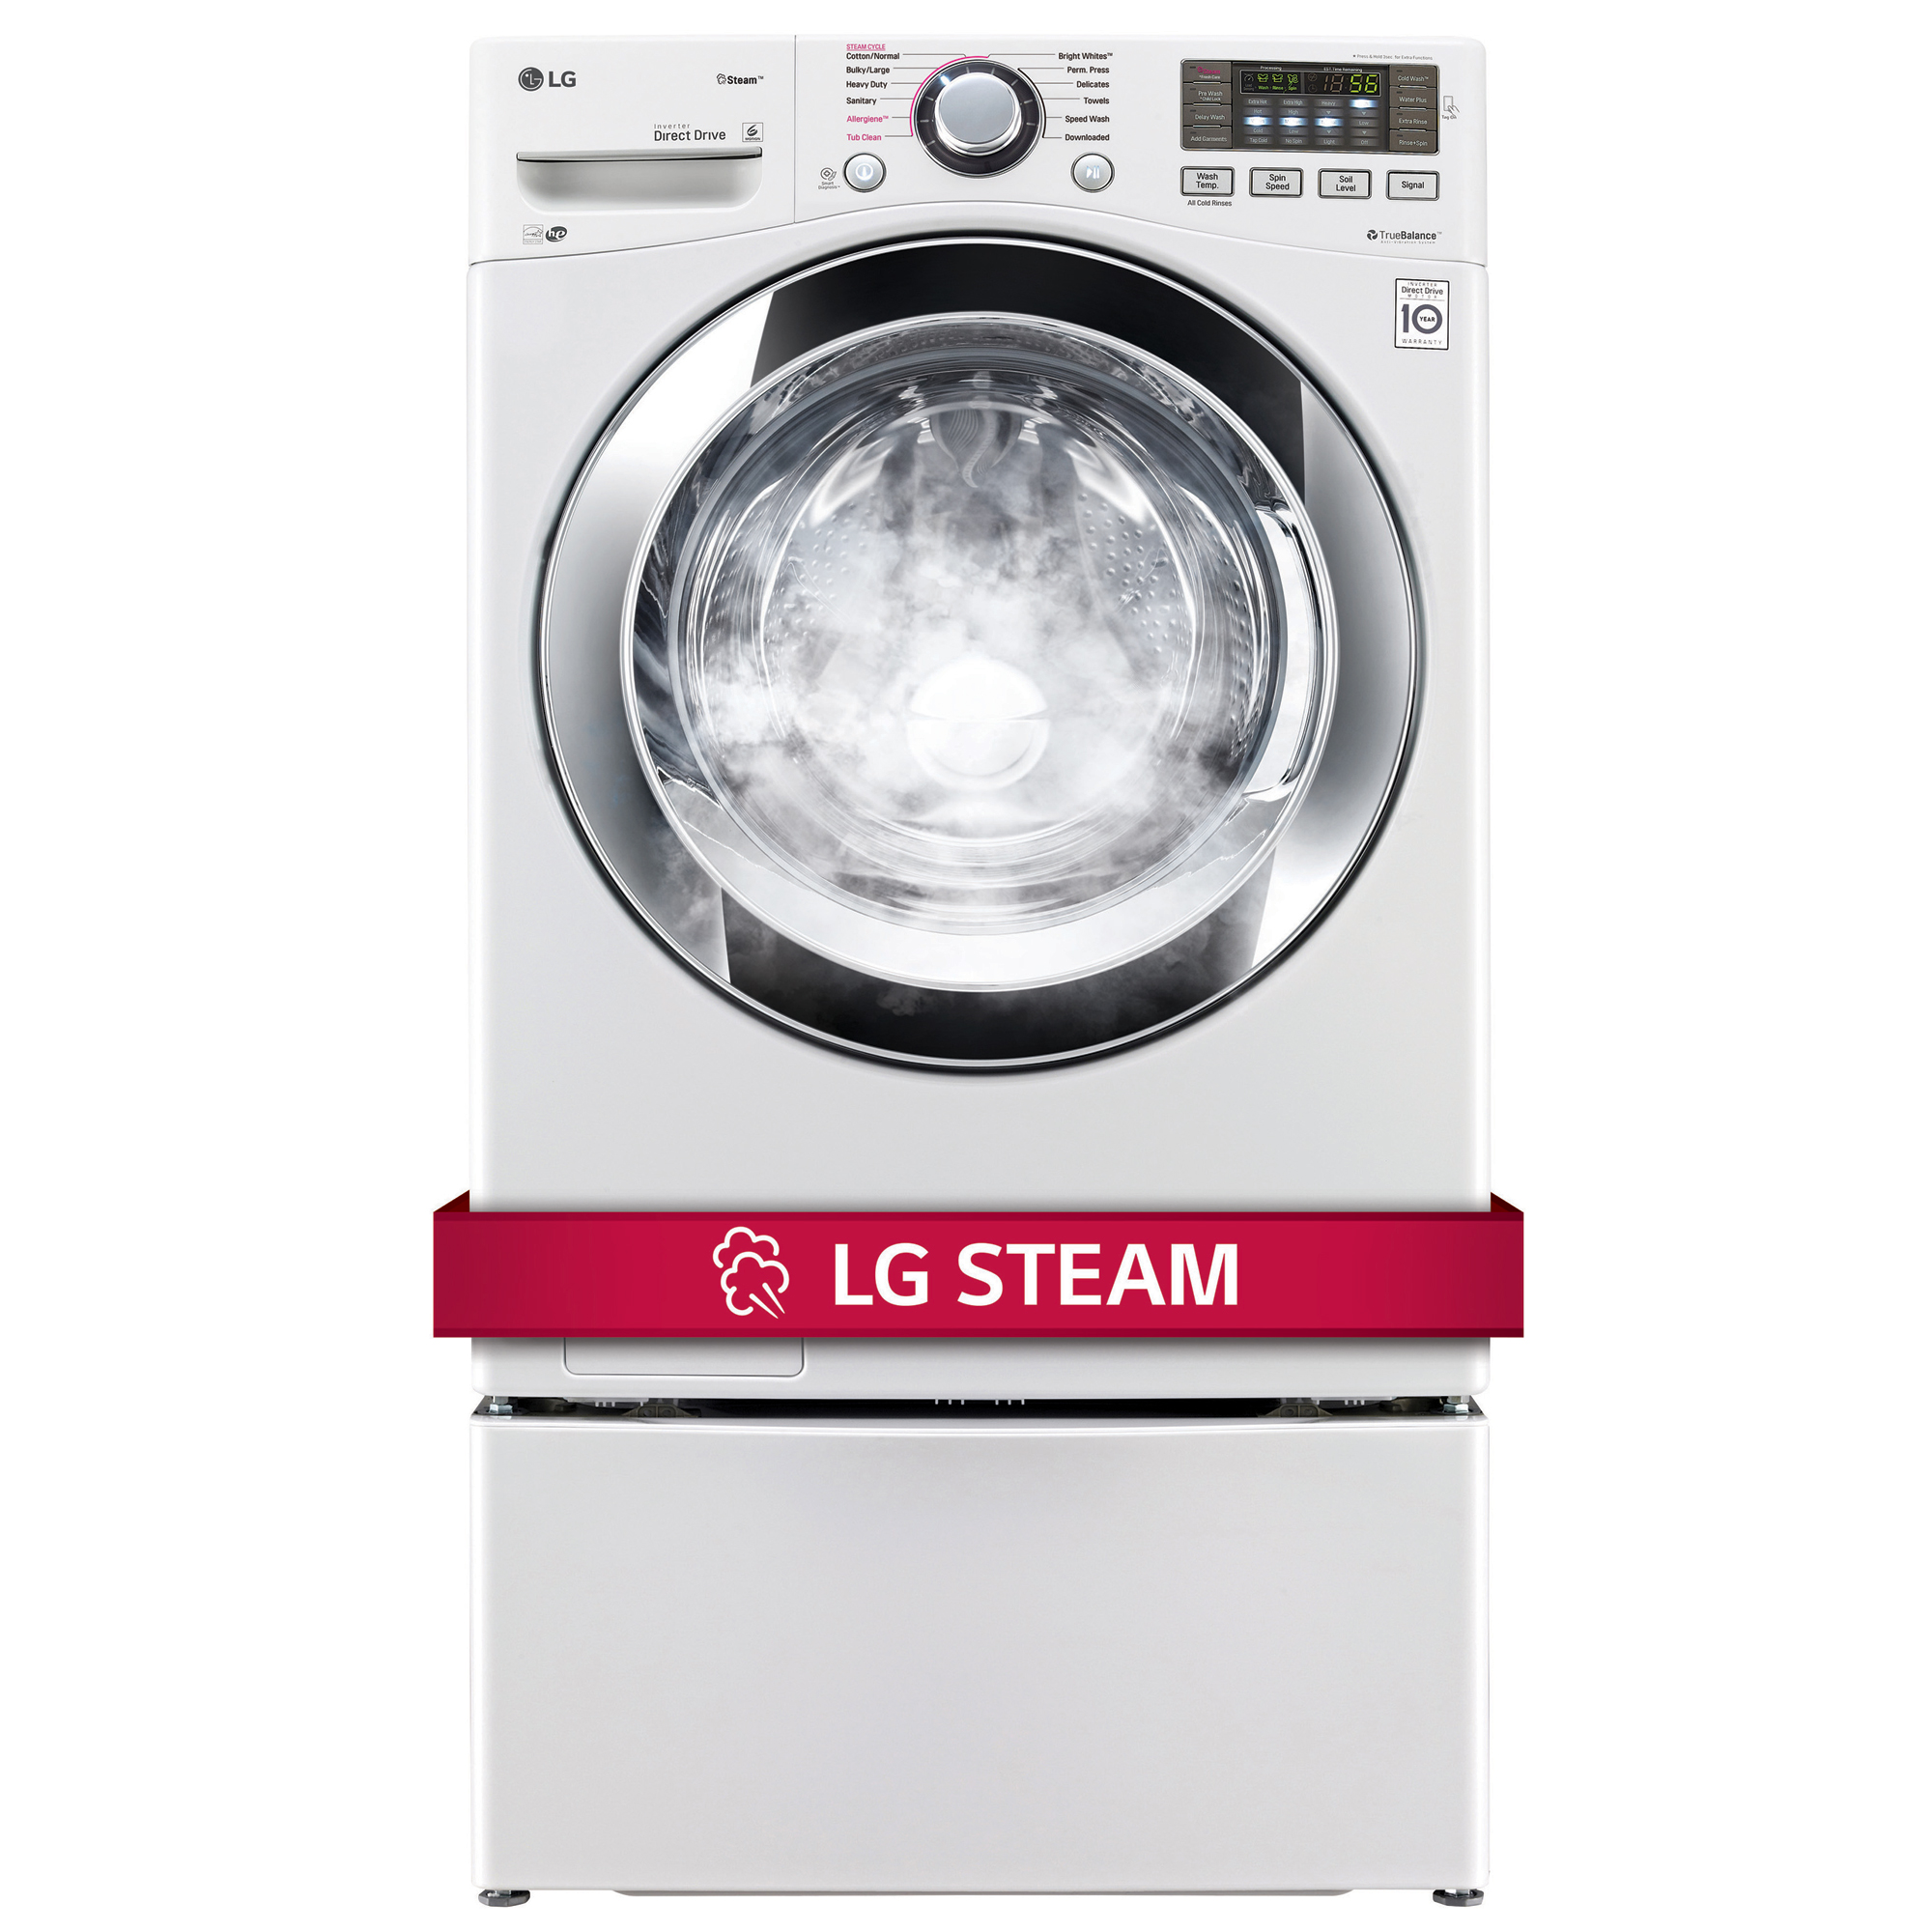 LG WM3670HWA 4.5 cu. ft. Ultra Large Capacity Front-Load Washer w/ Steam - White